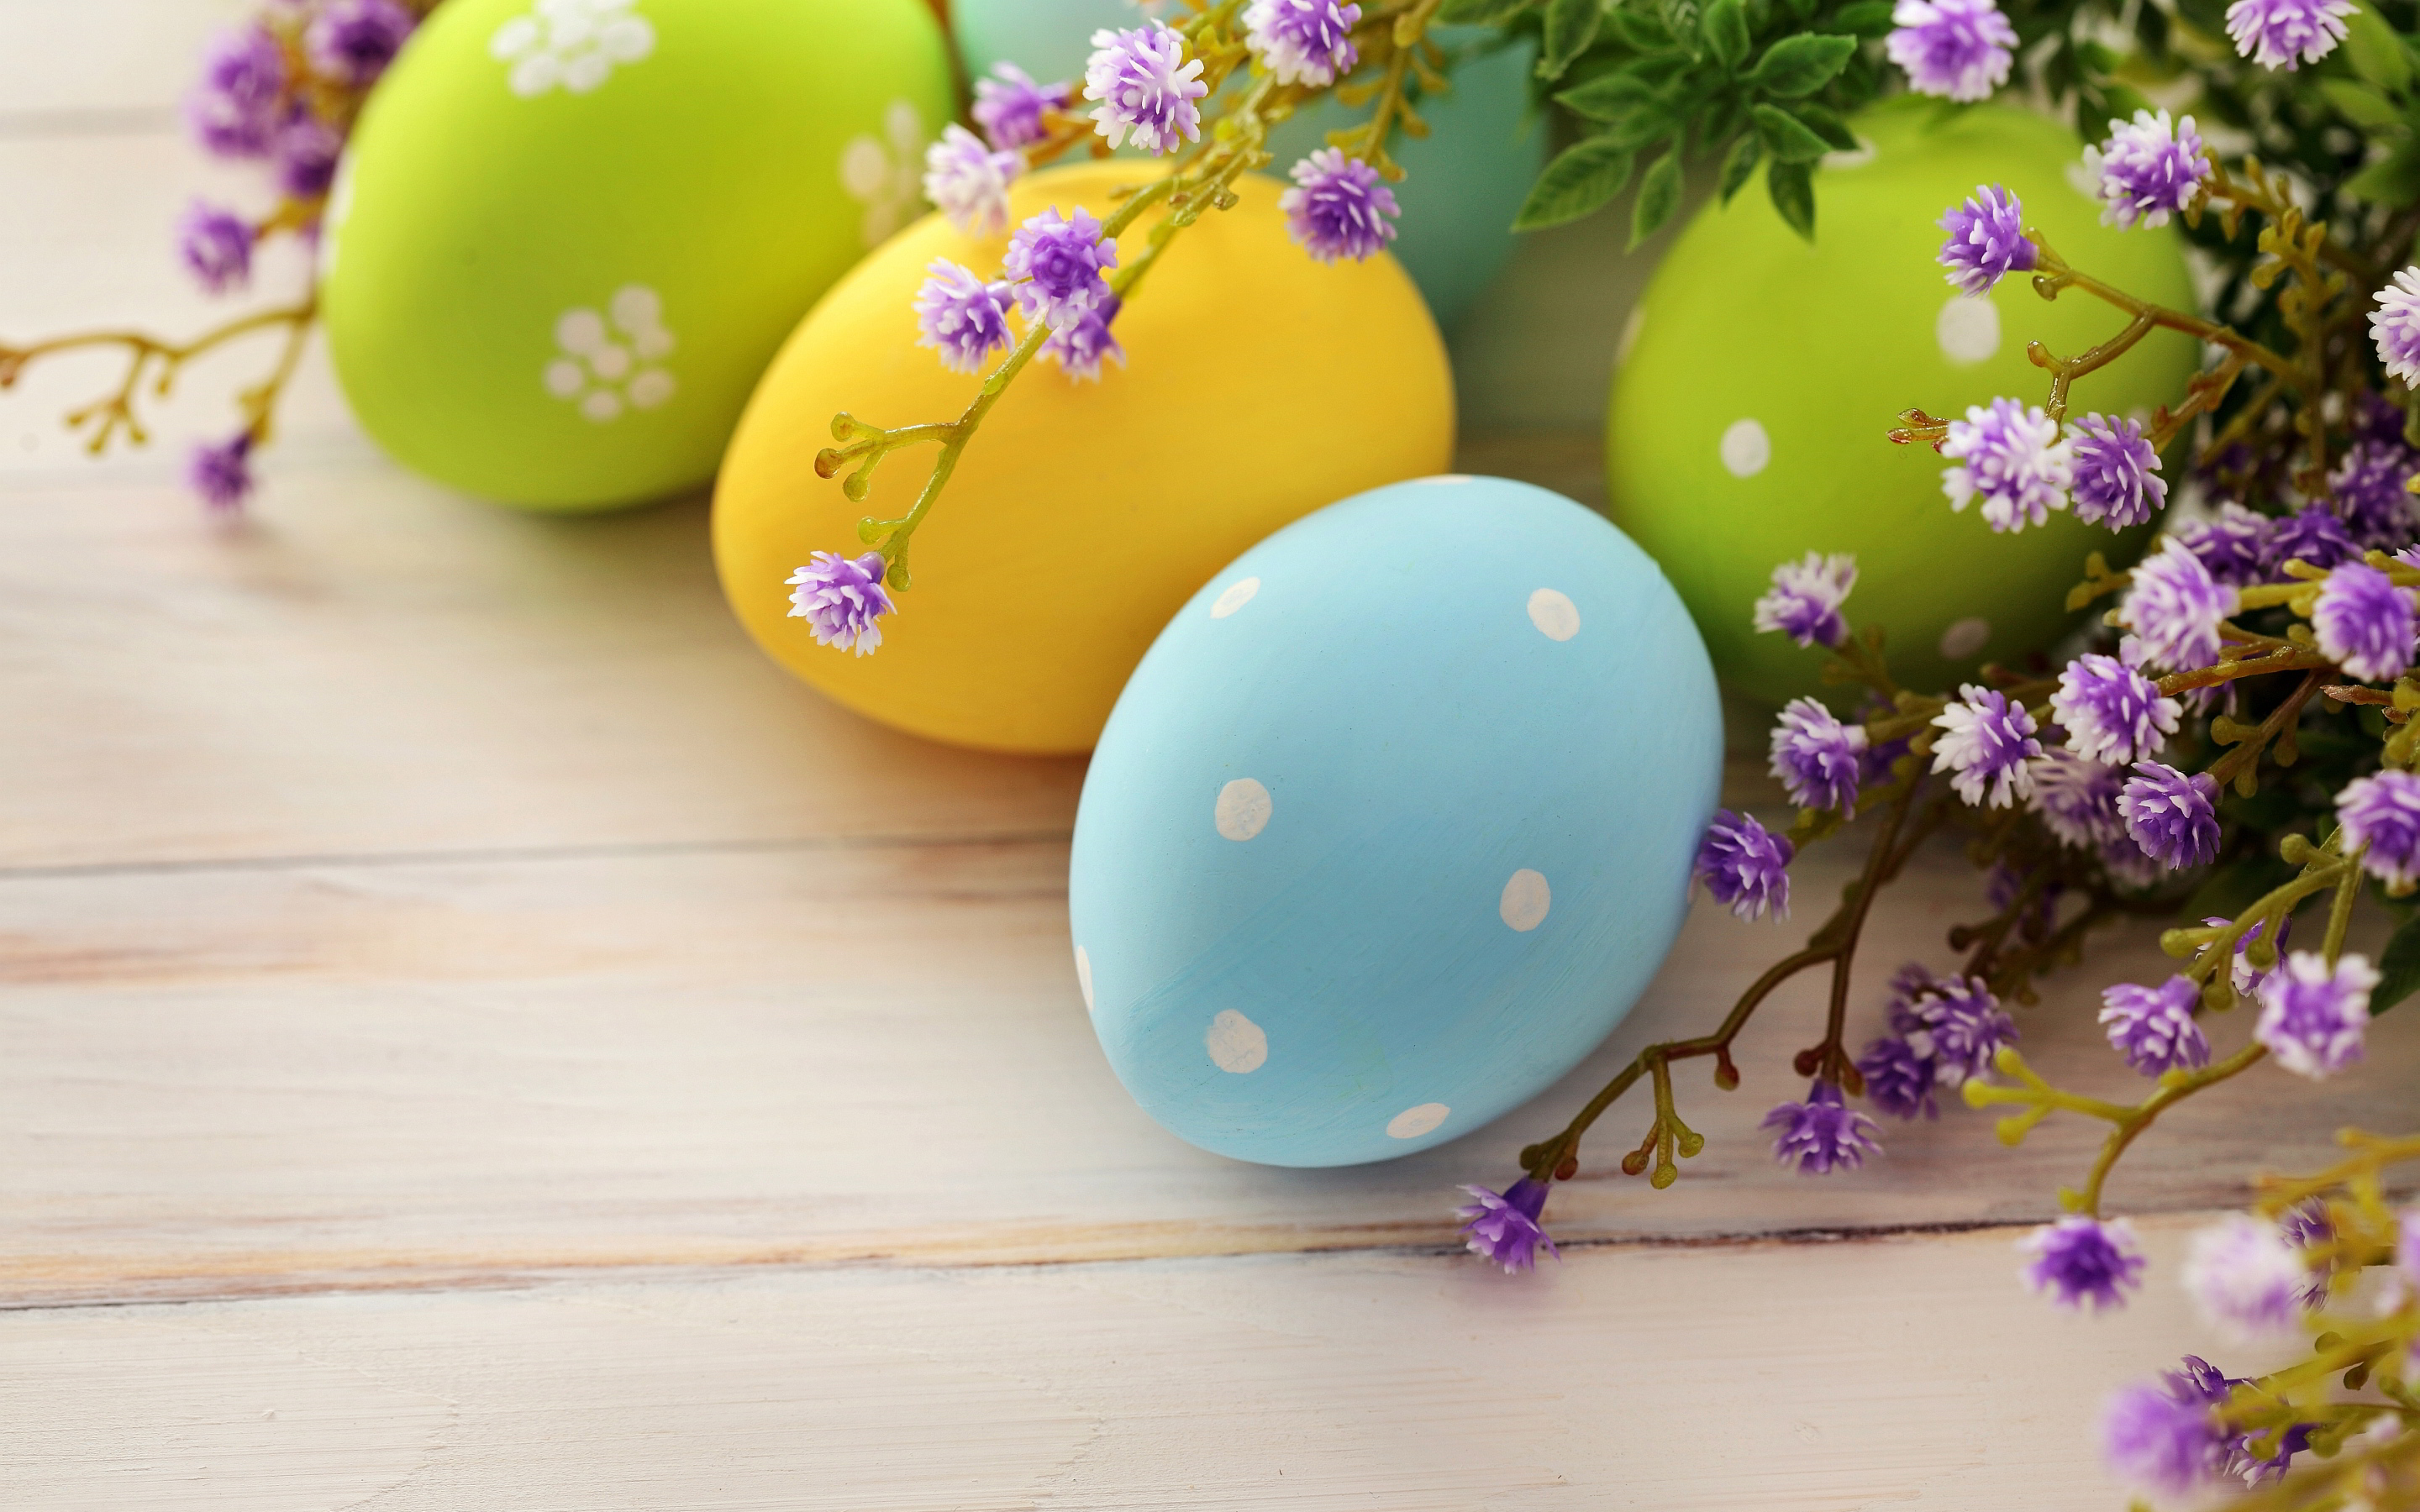 Cell Phone Wallpaper Girls Easter Wallpaper Hd Collection 11 Media File